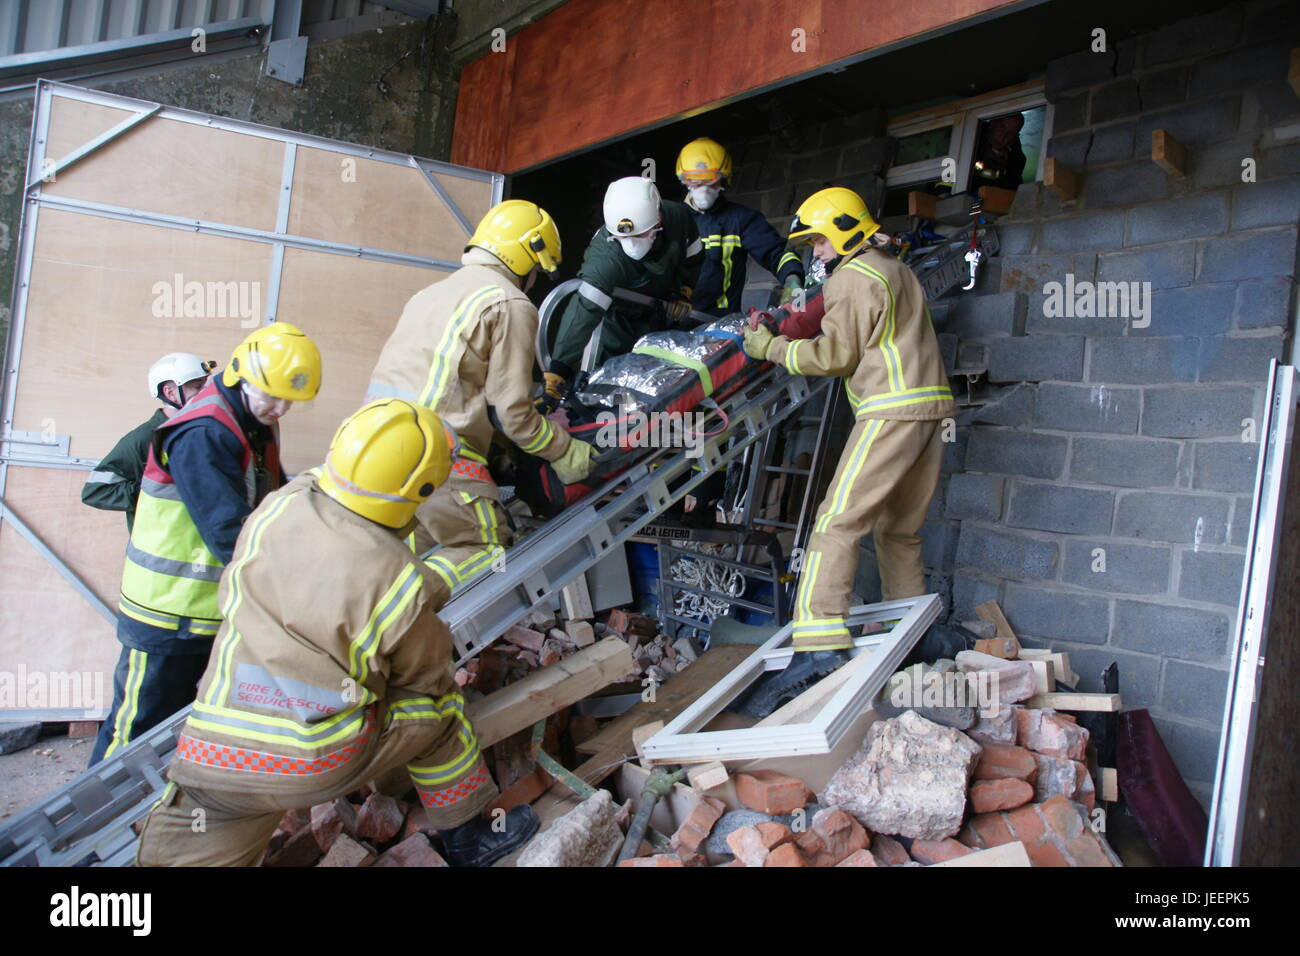 car bomb explosion, disaster zone. building collapse - Stock Image